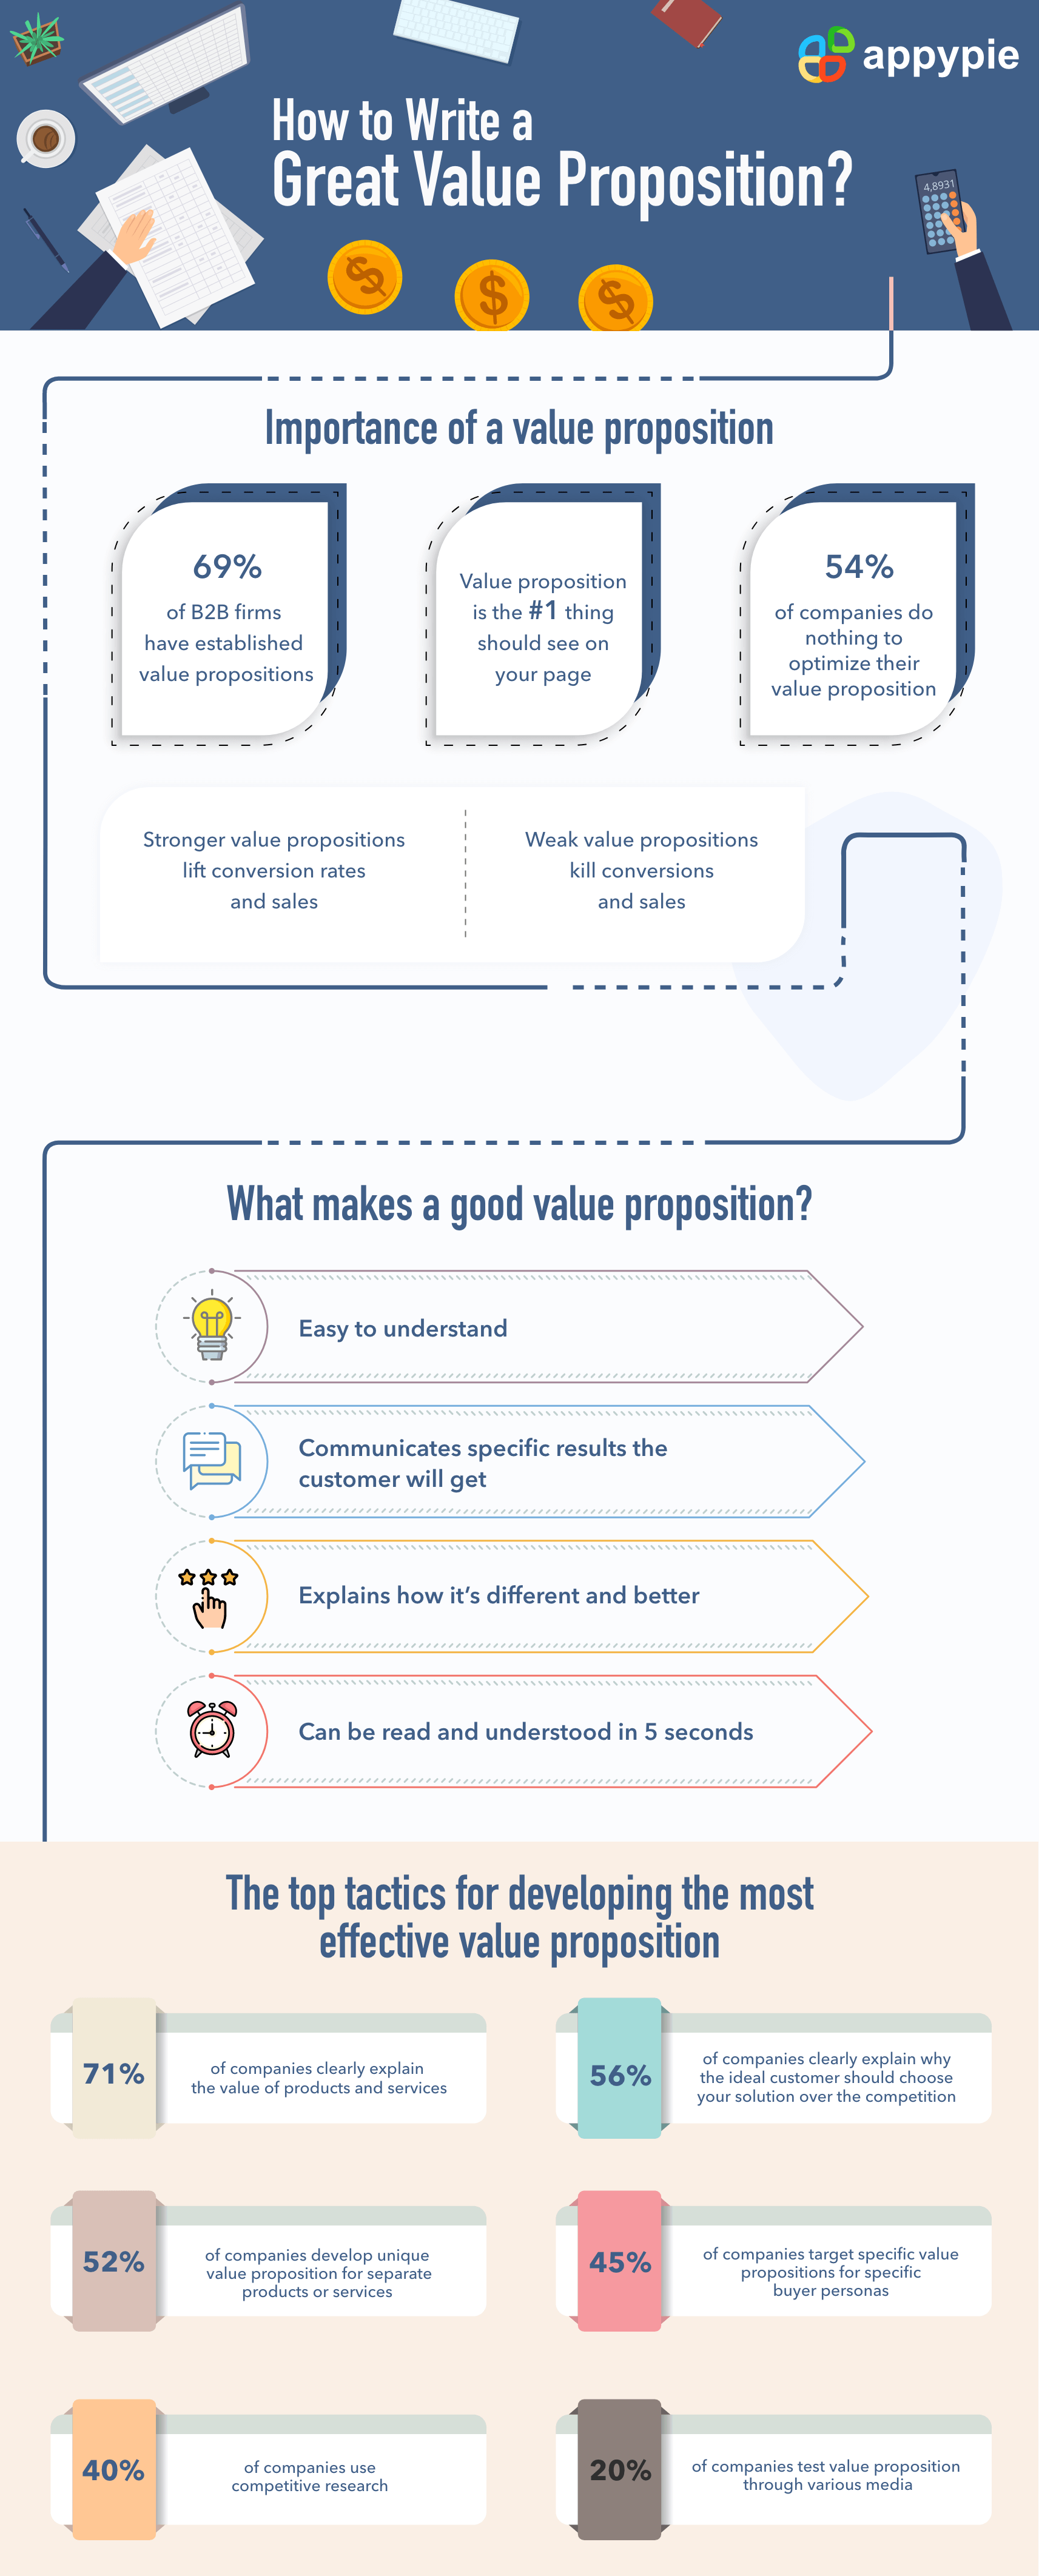 Appy Pie -How to Write a Good Value Proposition